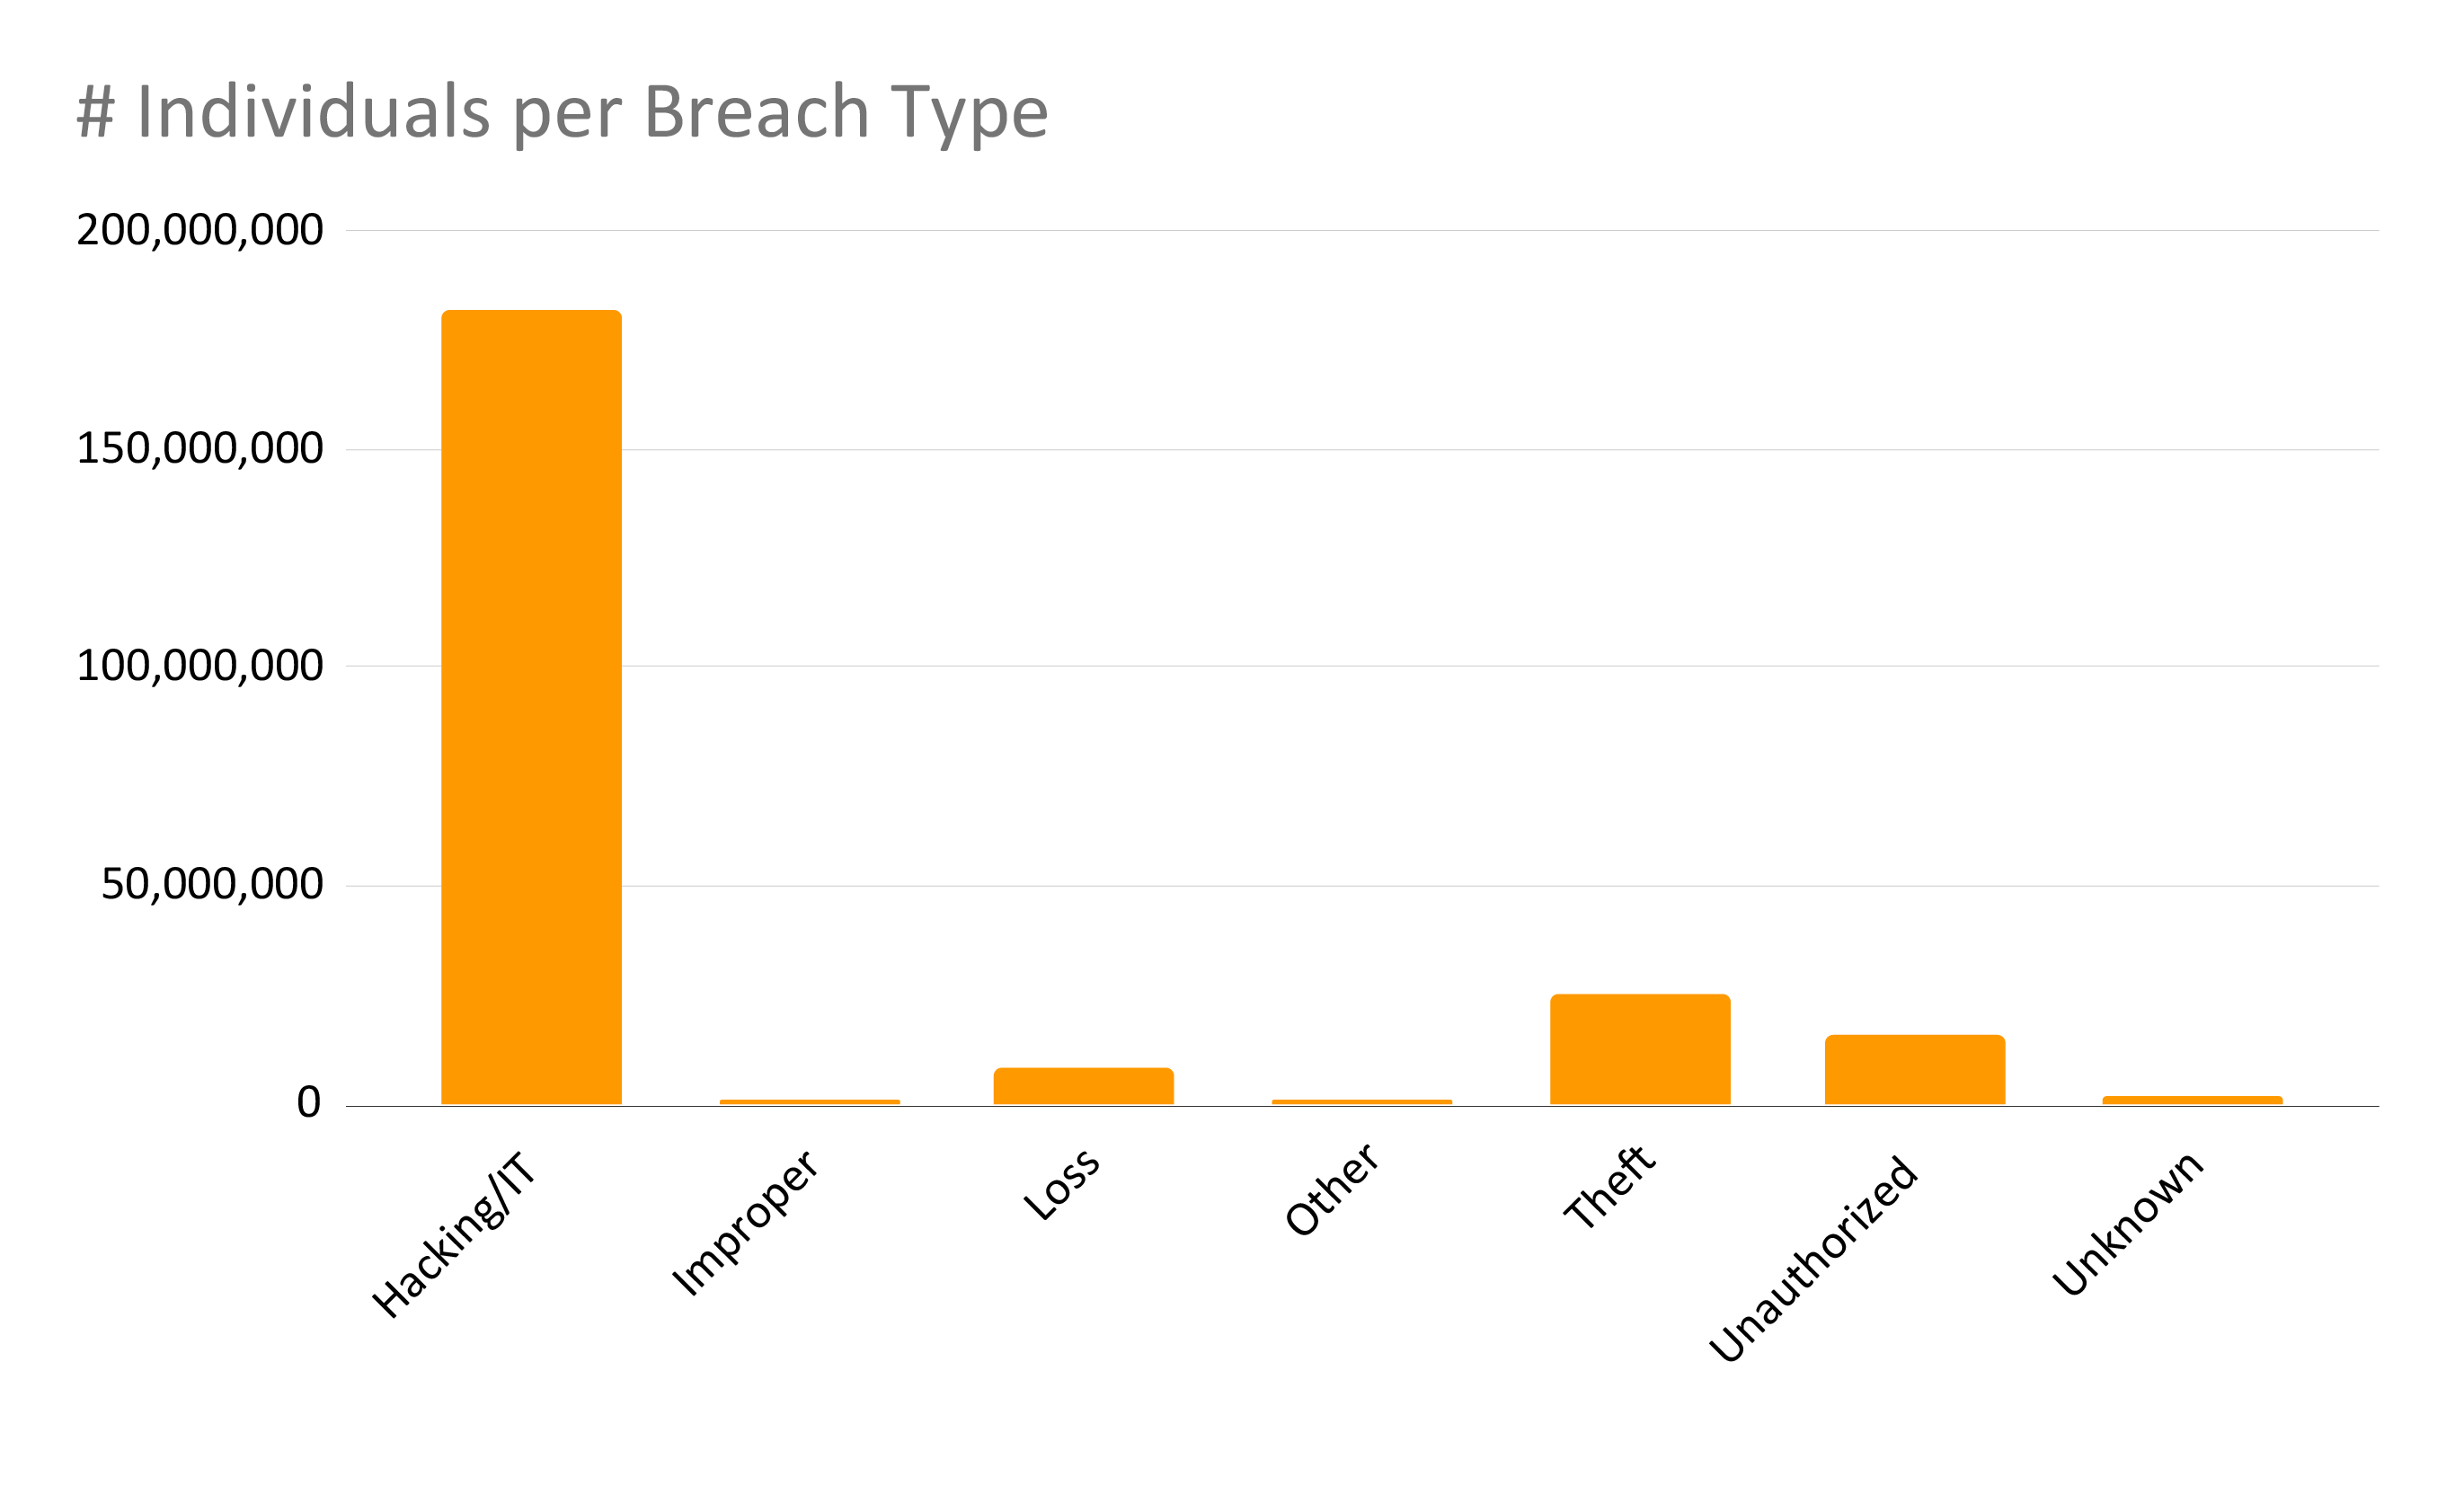 Total Number of Individuals by Breach Type